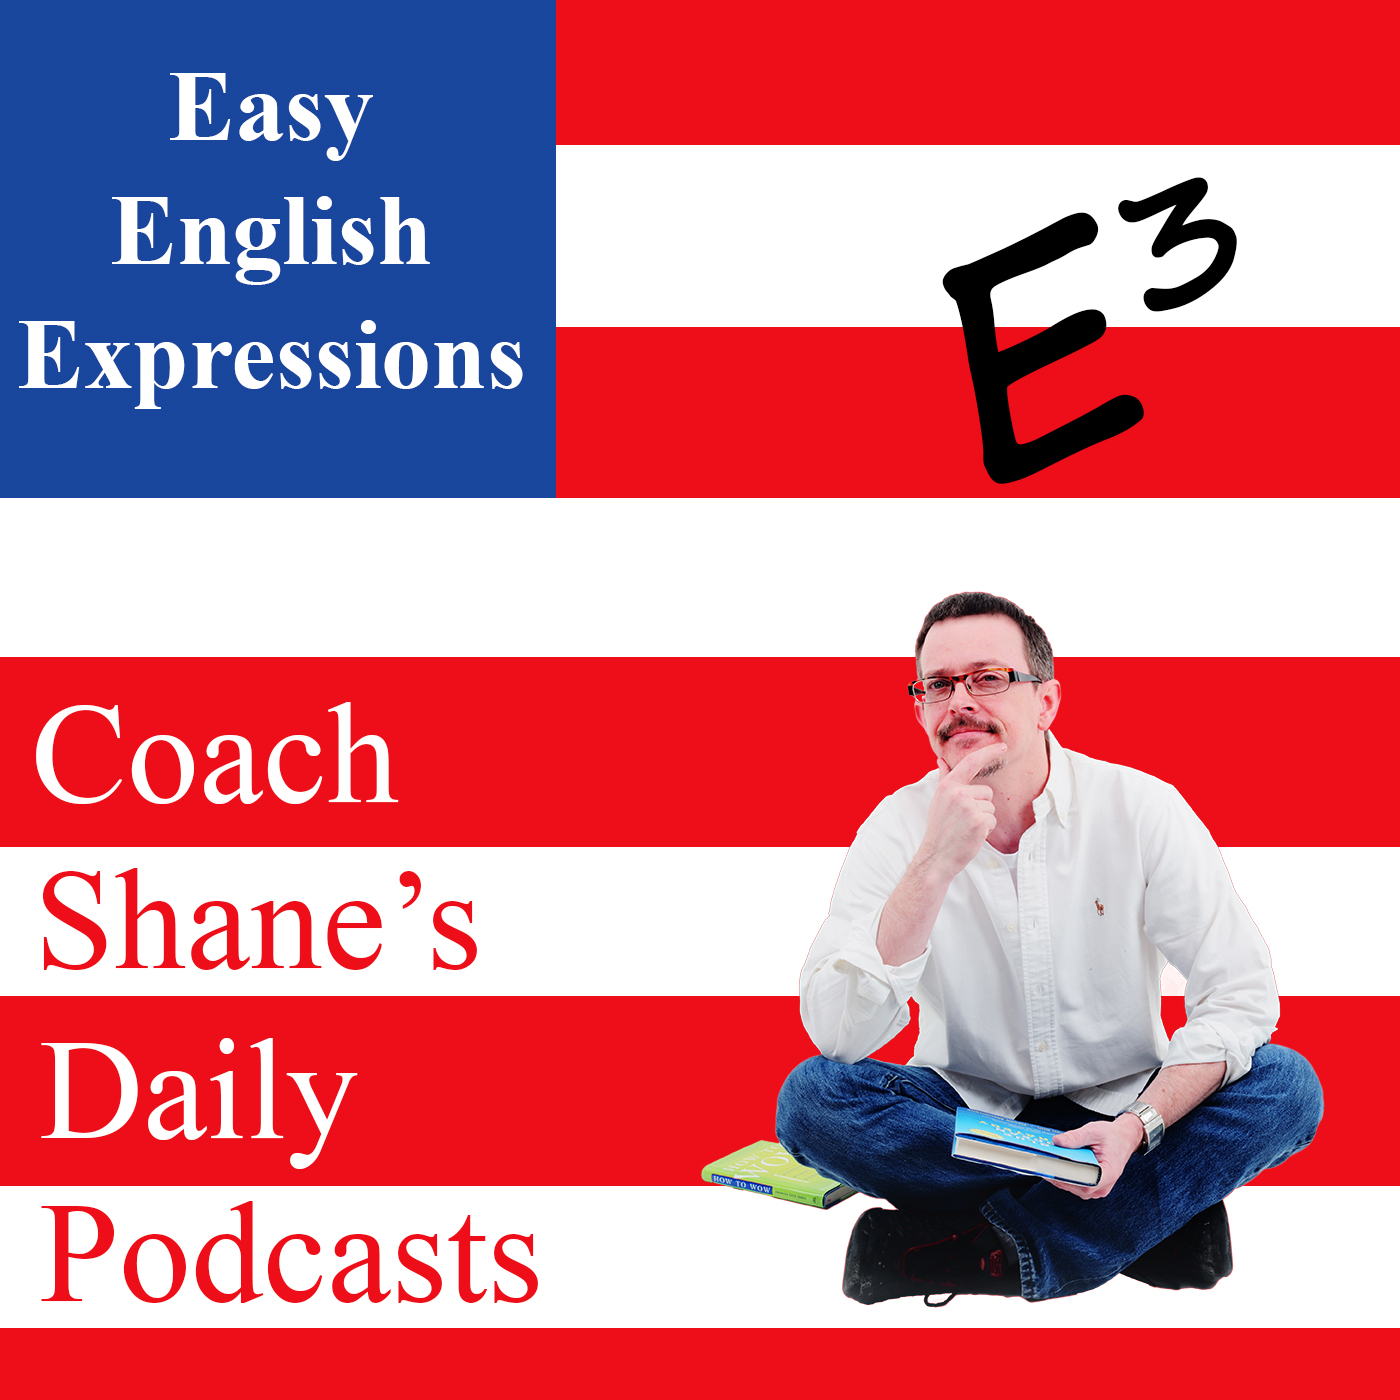 69 Daily Easy English Expression PODCAST—to be ON CALL